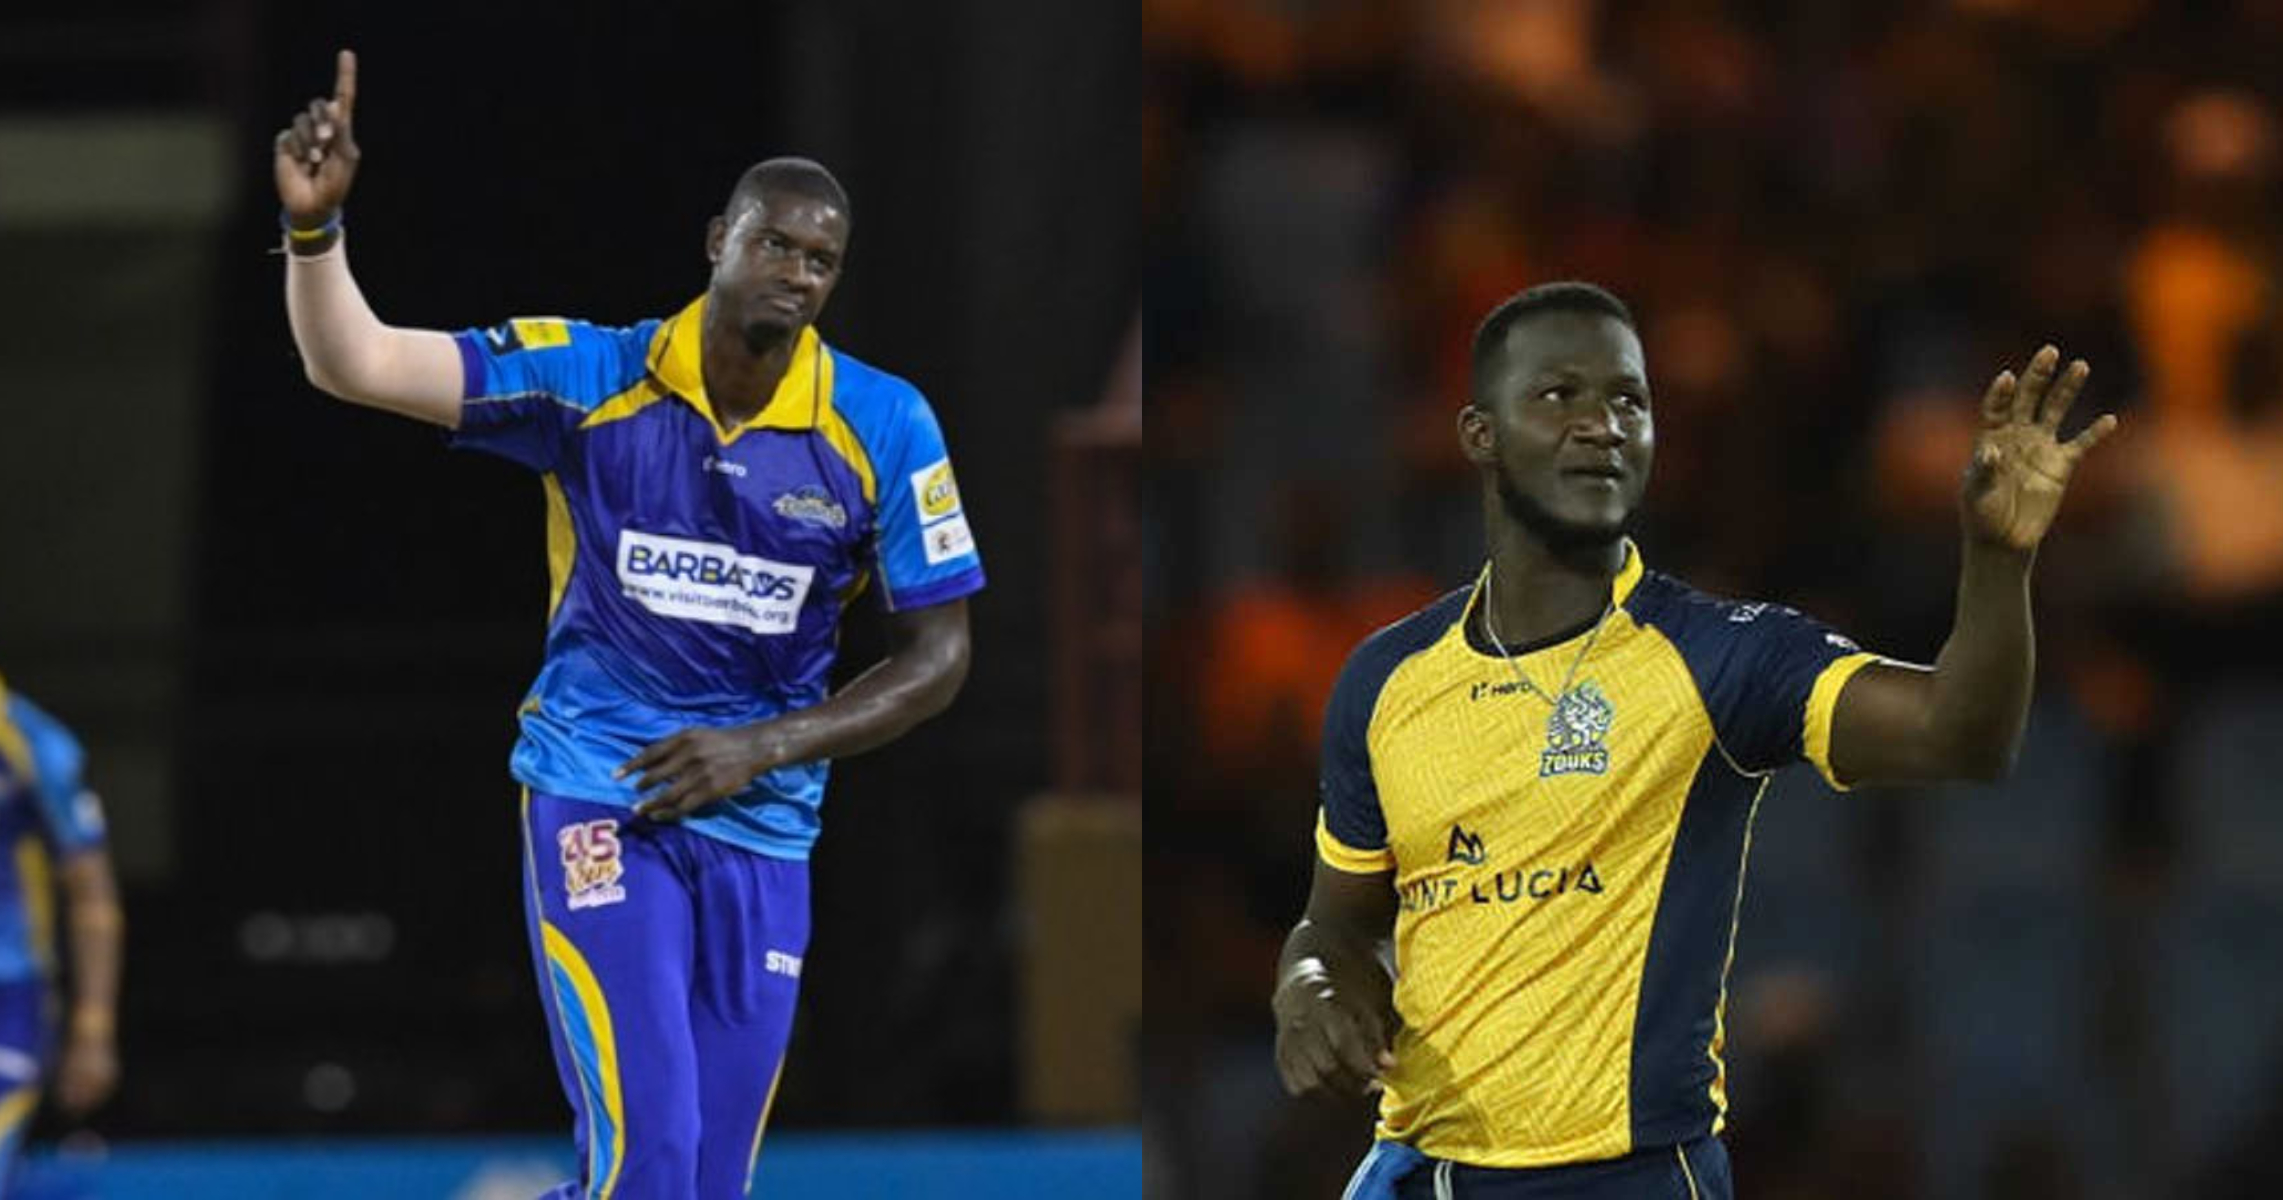 Barbados Tridents need to win their next game against St Lucia Zouks